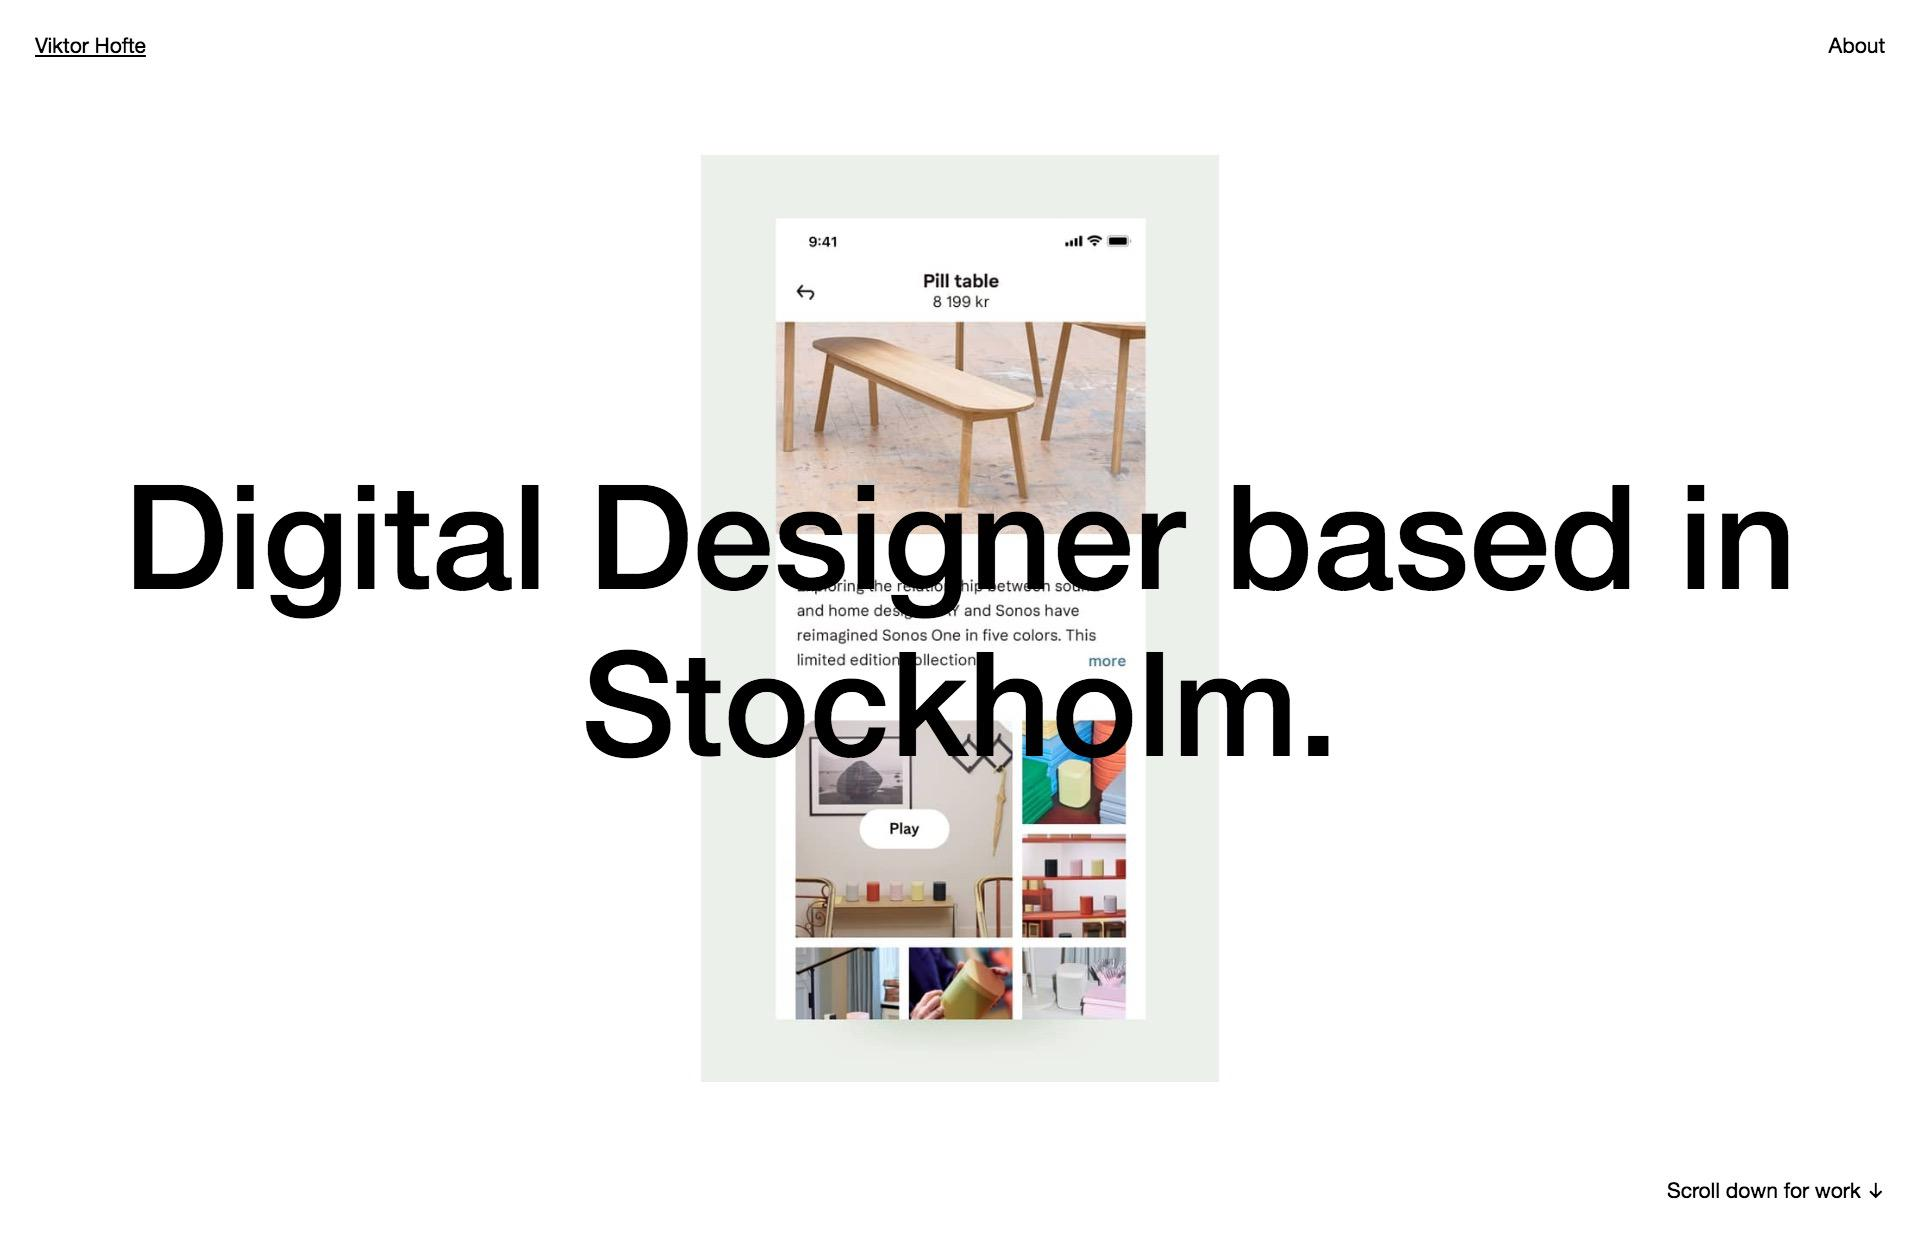 Screenshot of the website Viktor Hofte, featured on The Gallery, a curated collection of minimal websites